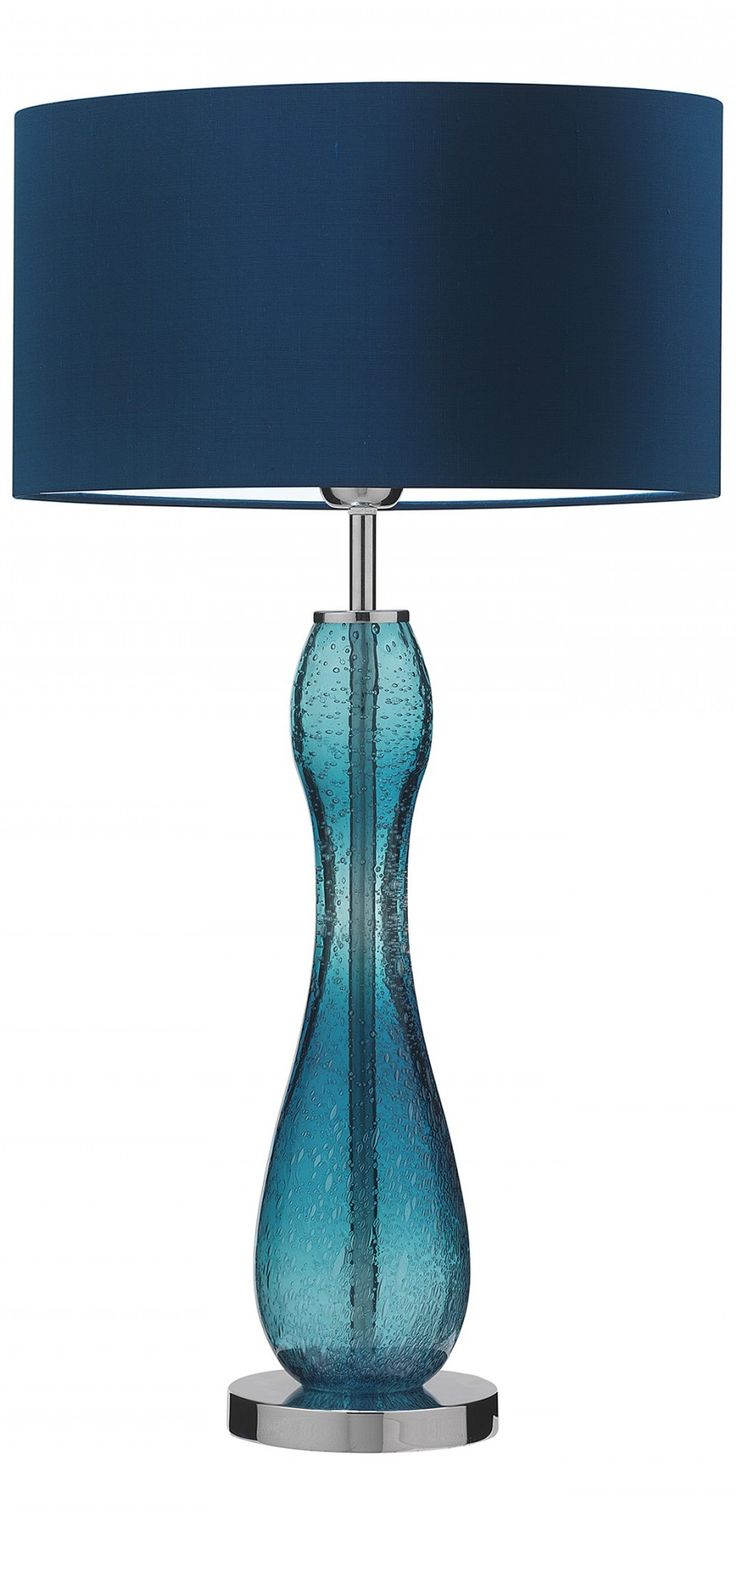 562 Best Table Lamps Images On Pinterest Designer Table Lamps Modern Table Lamps And Bedroom